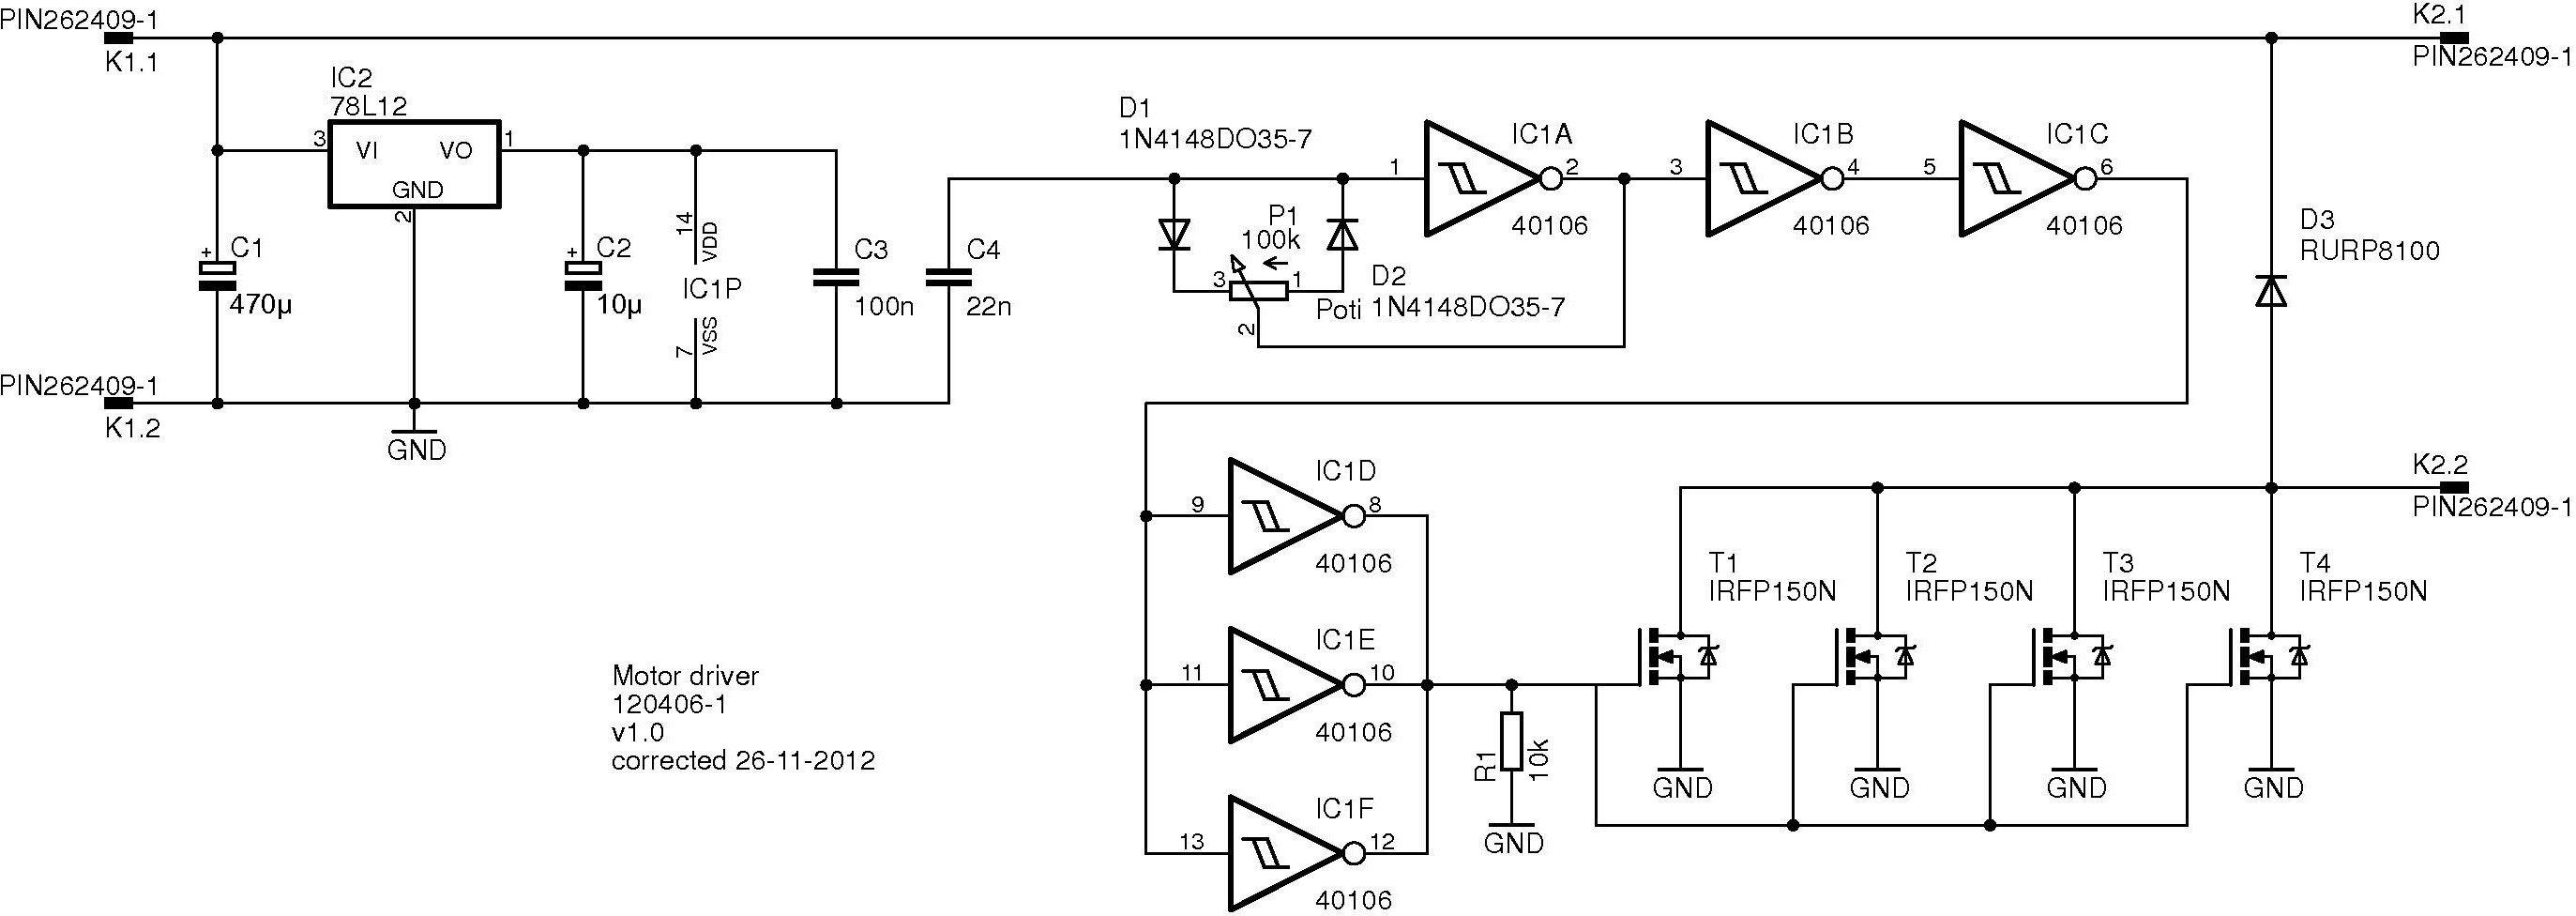 Pc Based Oscilloscope Circuit Diagram Elektronika T Eevblog 262 World39s Simplest Soft Latching Power Switch Of Conceptual Schematic A Differential Probe